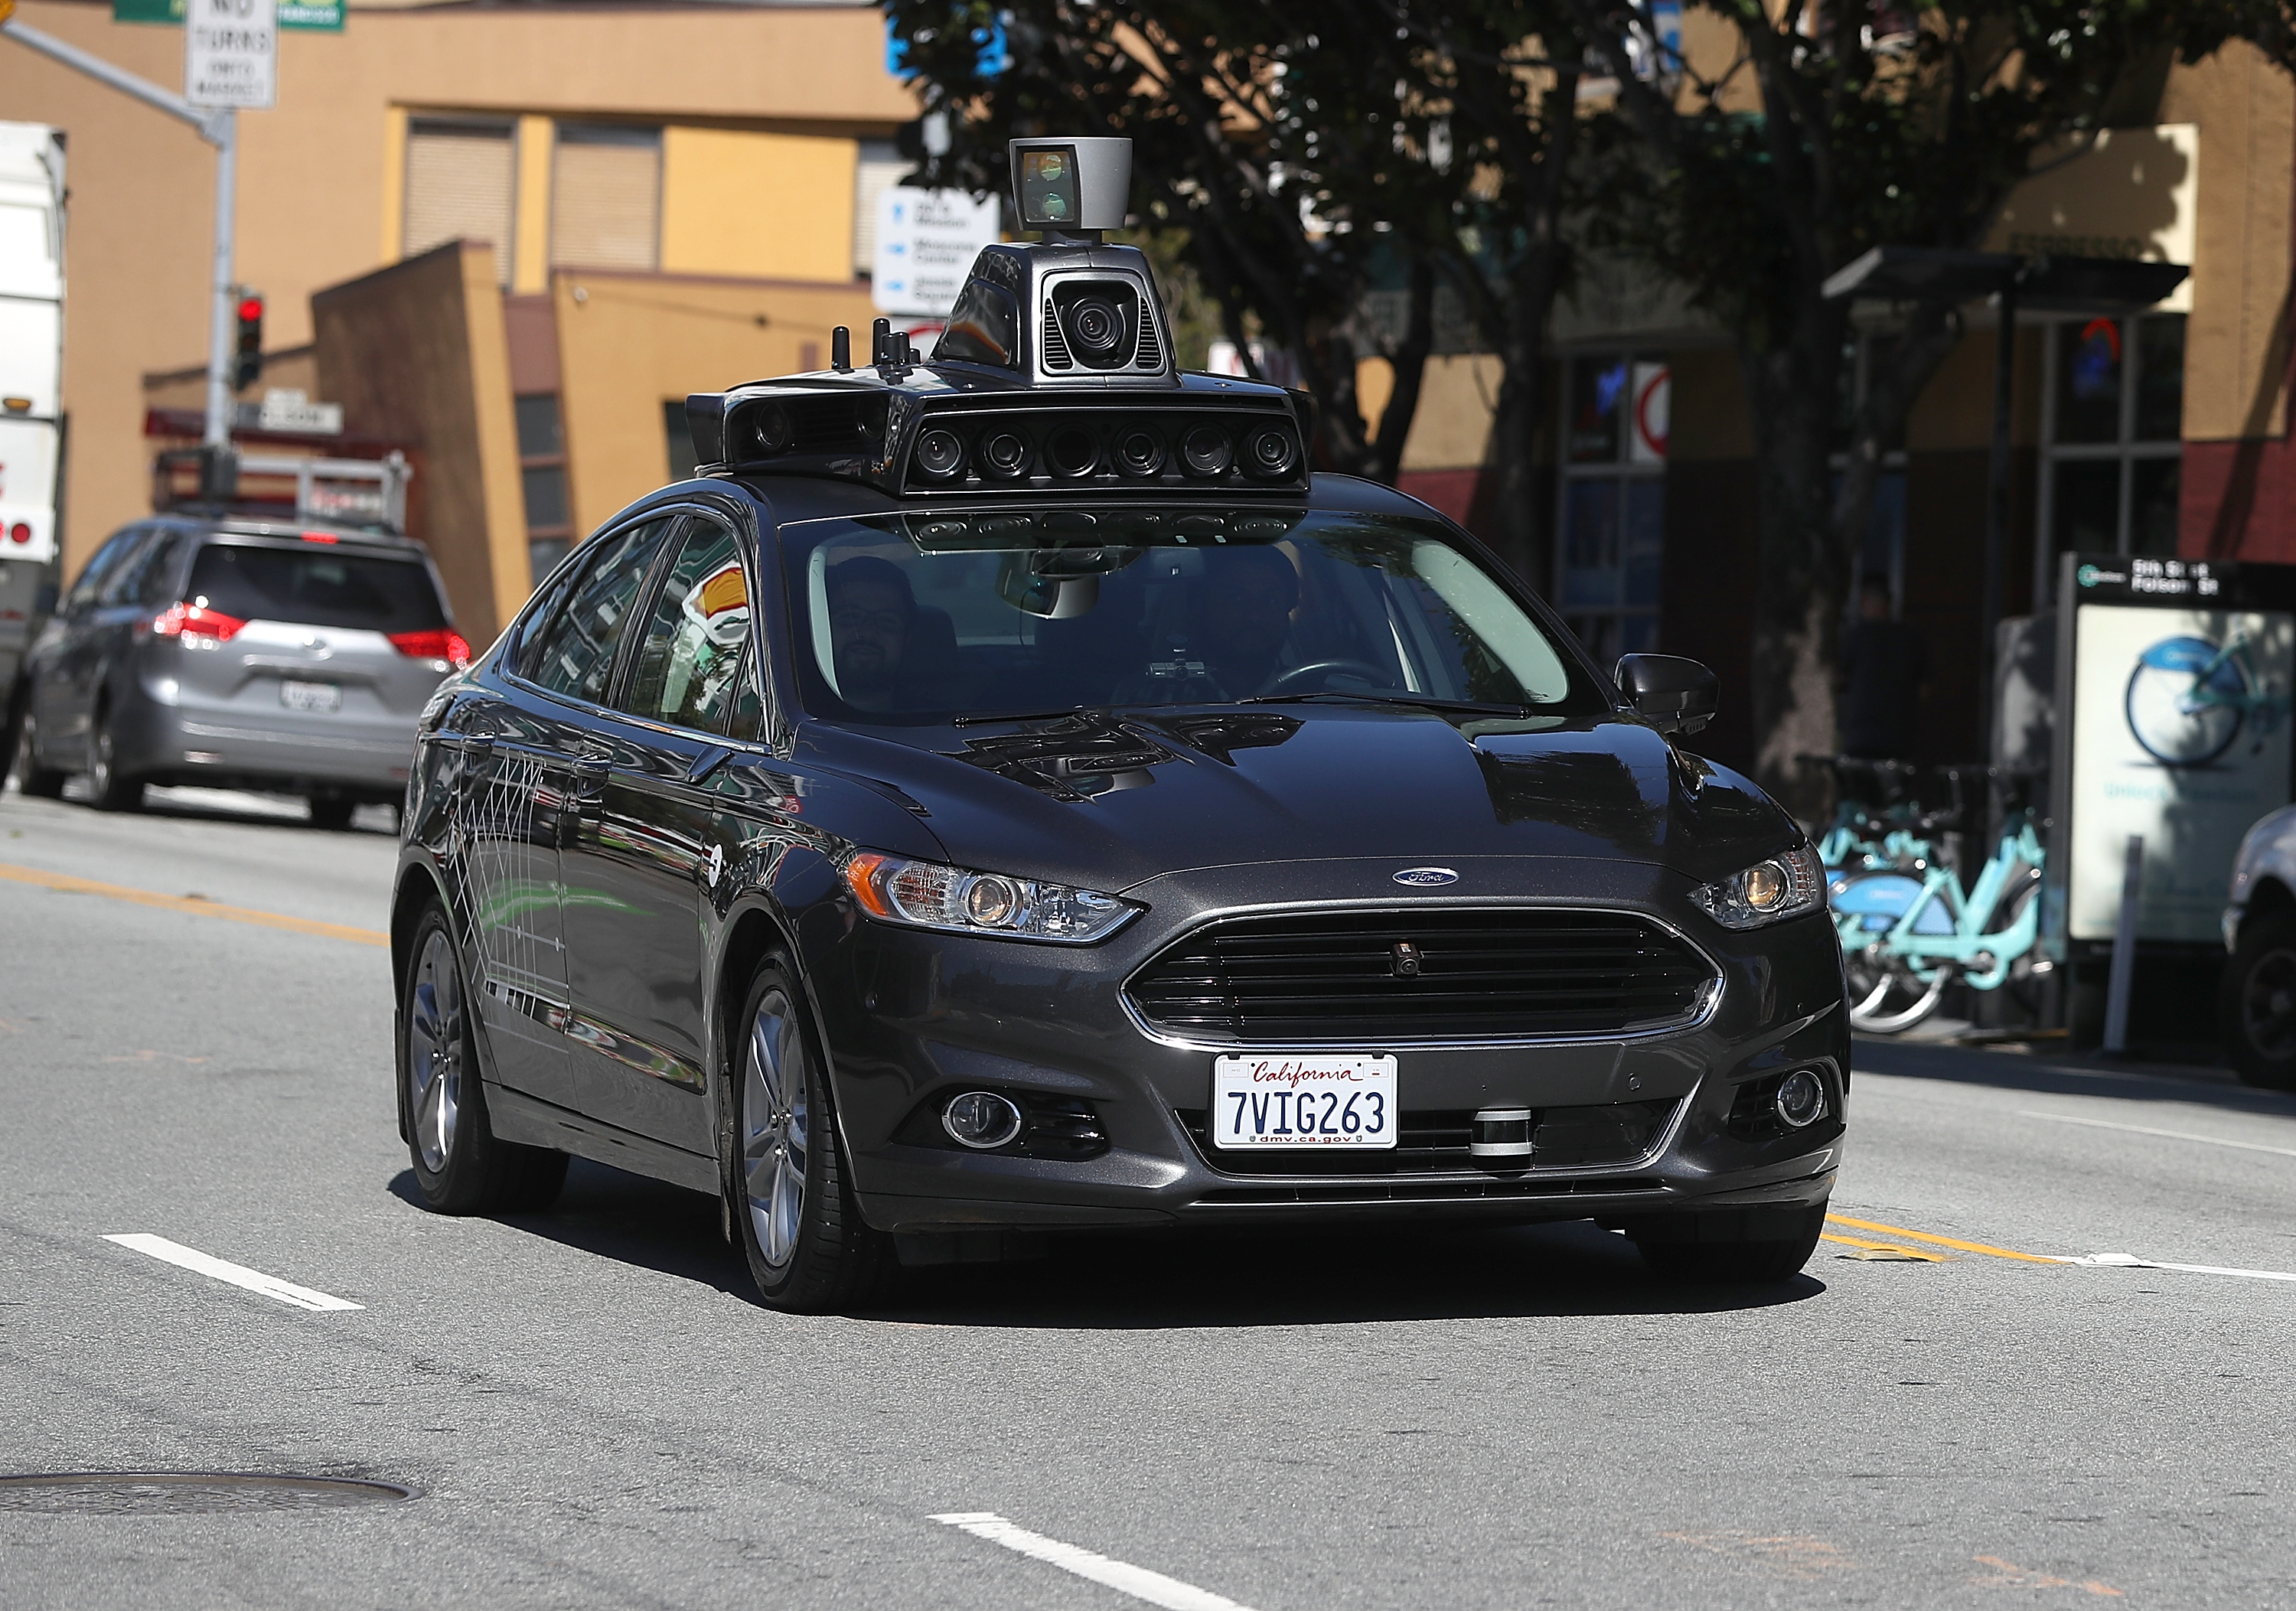 Humans Are Leading Cause of Self-Driving Car Accidents in